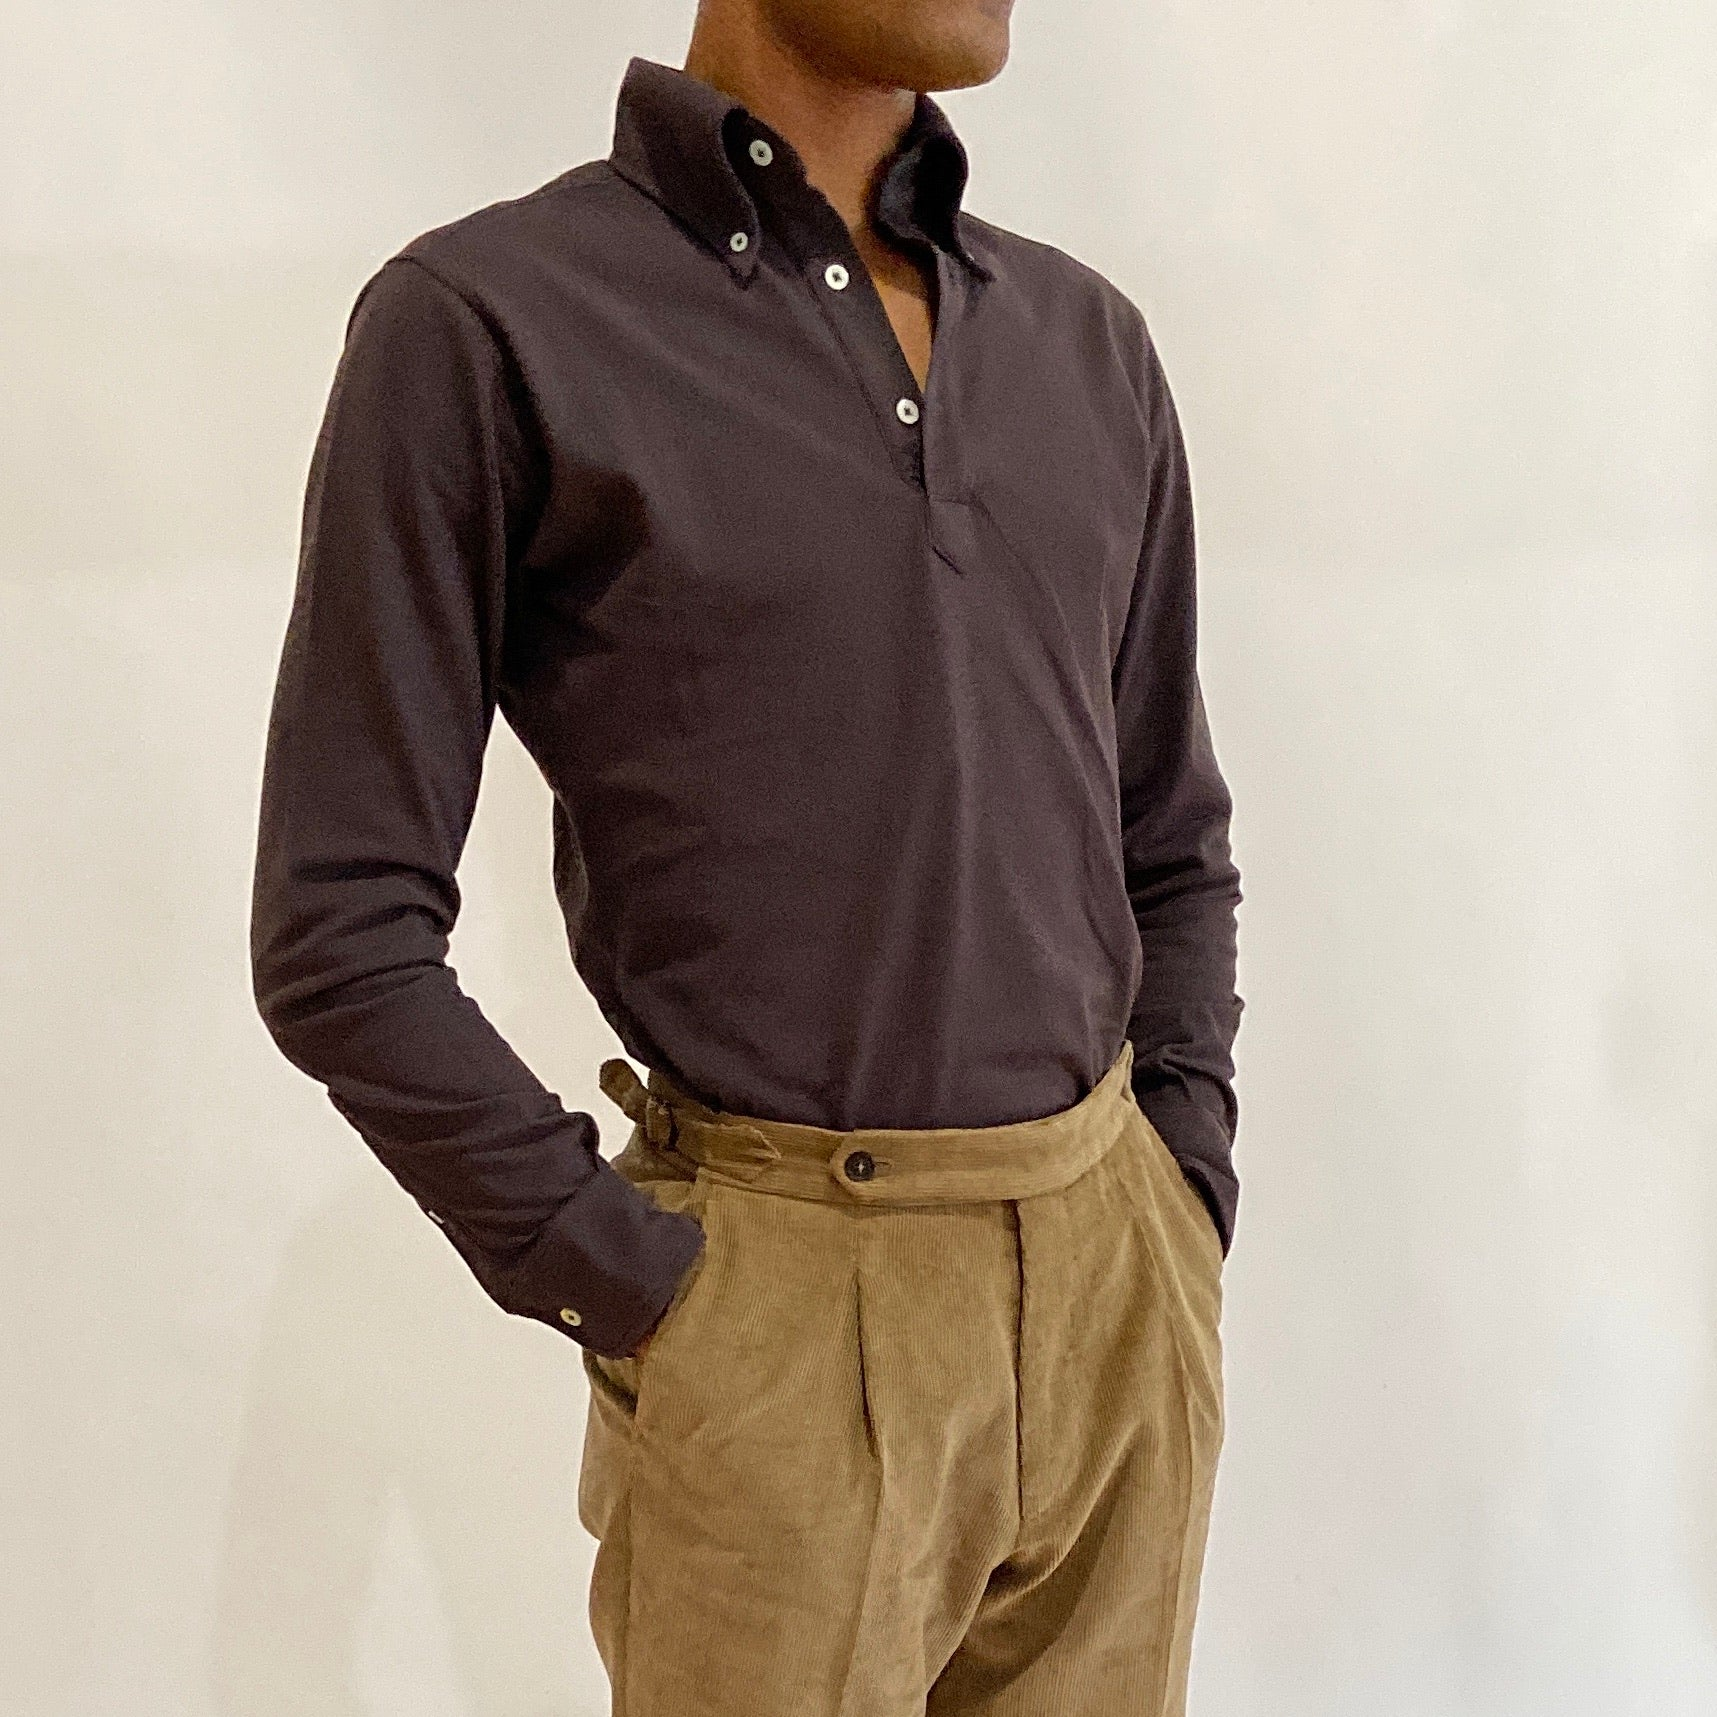 Long Sleeve Button Down Polo Shirt - Brown